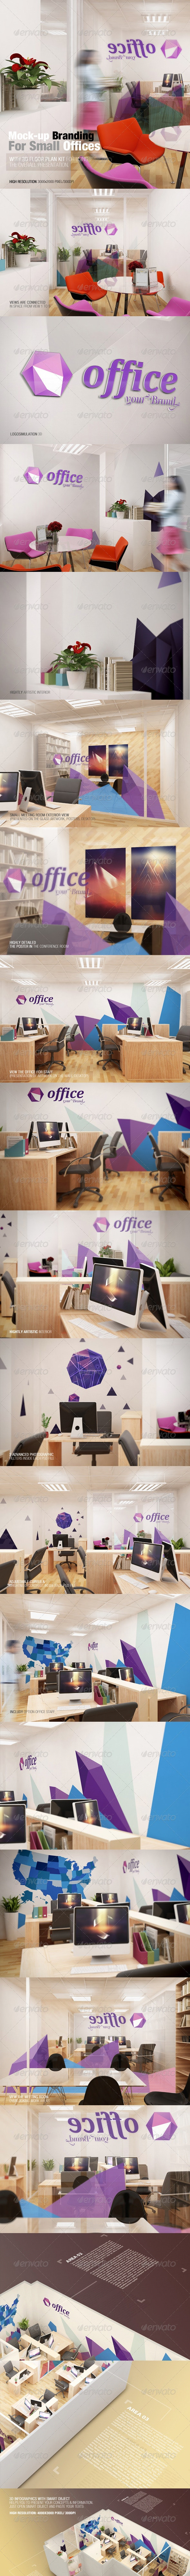 Mockup Branding For Small Offices - Logo Product Mock-Ups